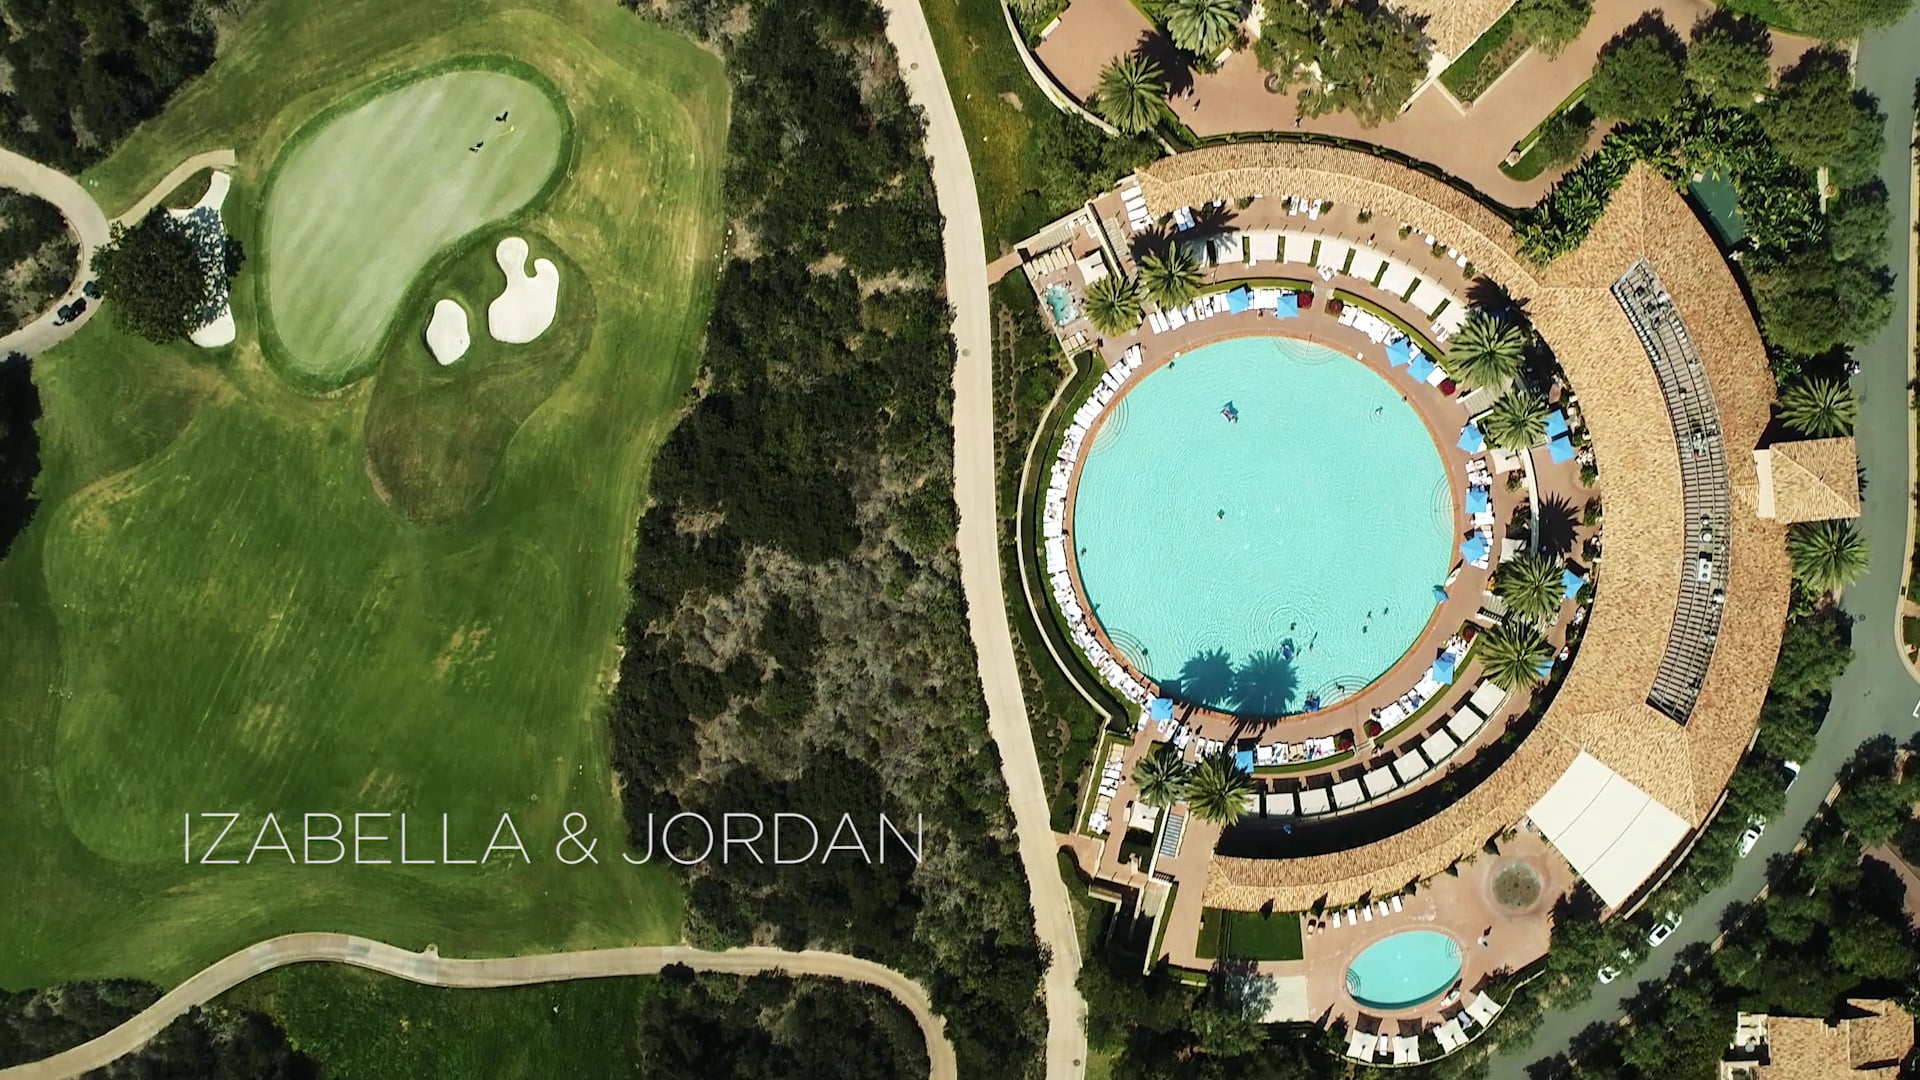 Izabella + Jordan | Newport Beach, California | The Resort at Pelican Hill